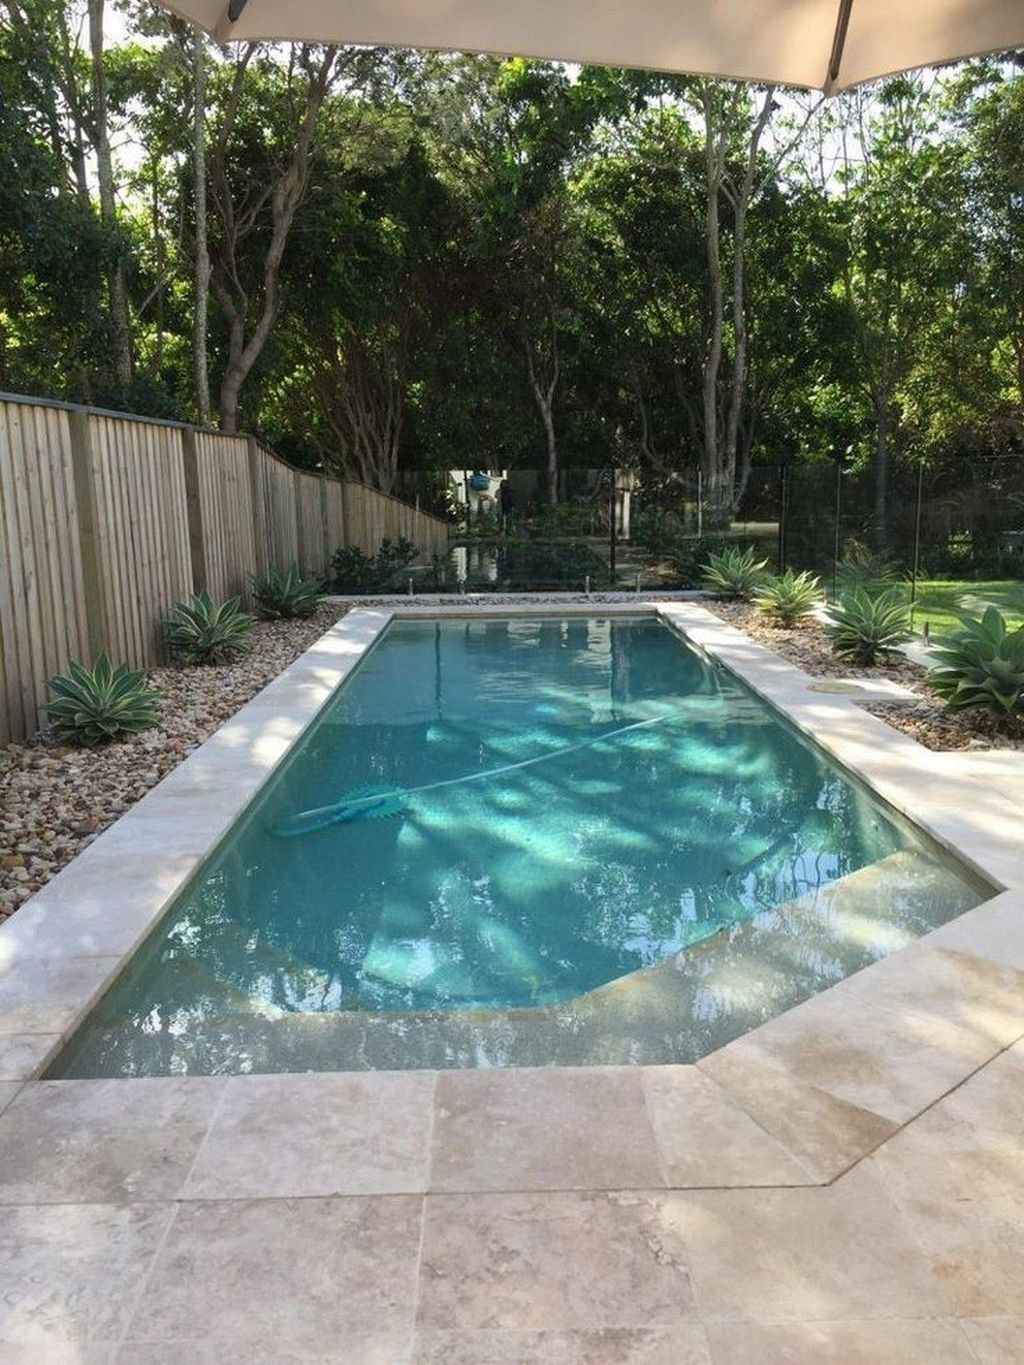 24 Easy And Simple Small Backyard Designs Ideas With Swimming Pool Indoor Pool Design Backyard Pool Designs Small Pool Design